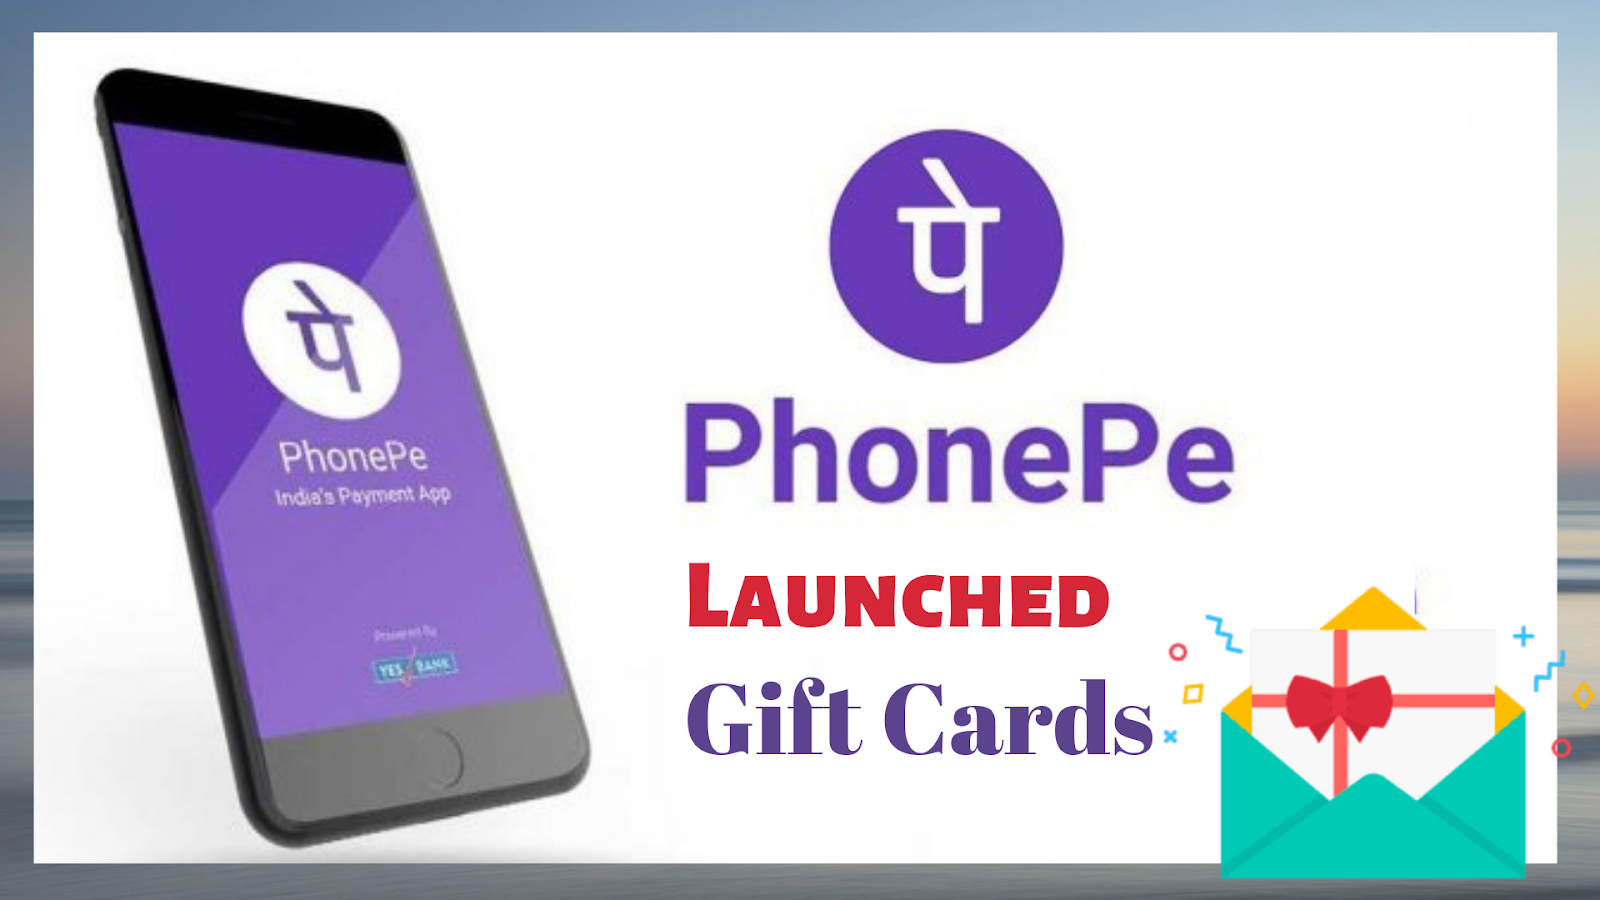 Phonepe gift cards launched